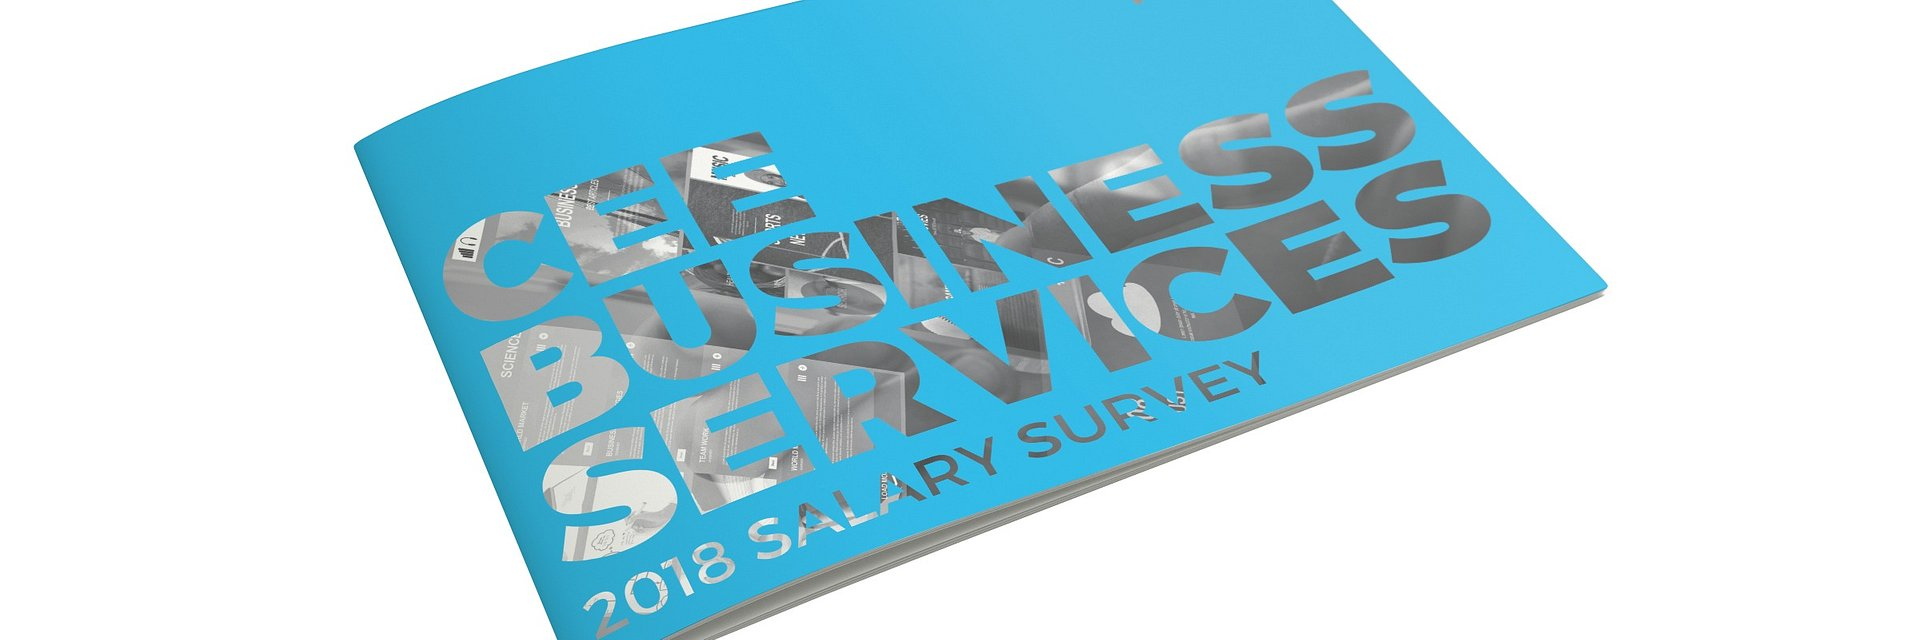 CEE Business Services 2018Salary Survey